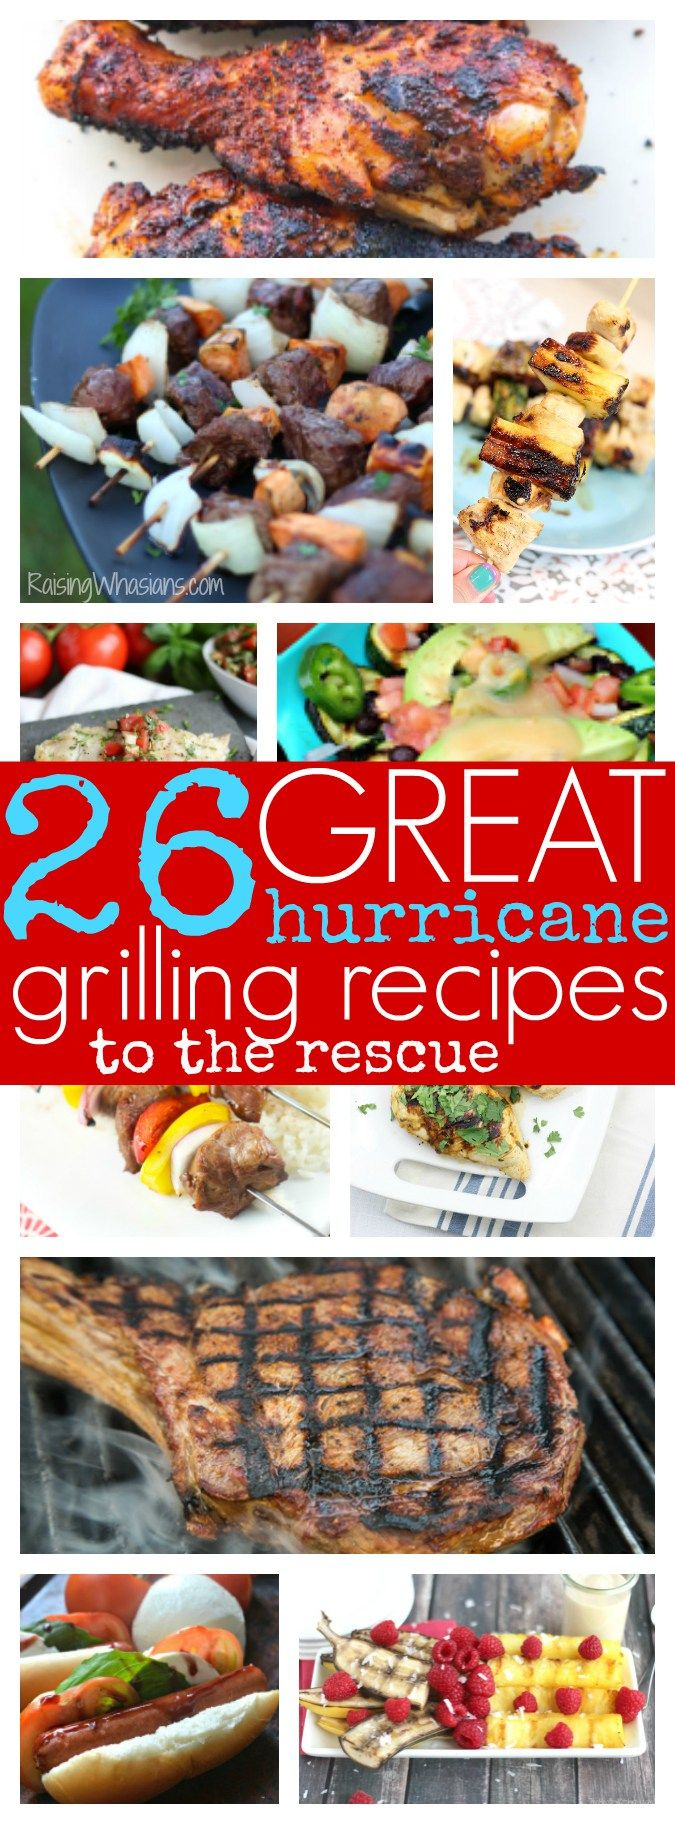 Hurricanes A-Blowing? 26 Hurricane Grilling Recipes to the Rescue - RaisingWhasians.com